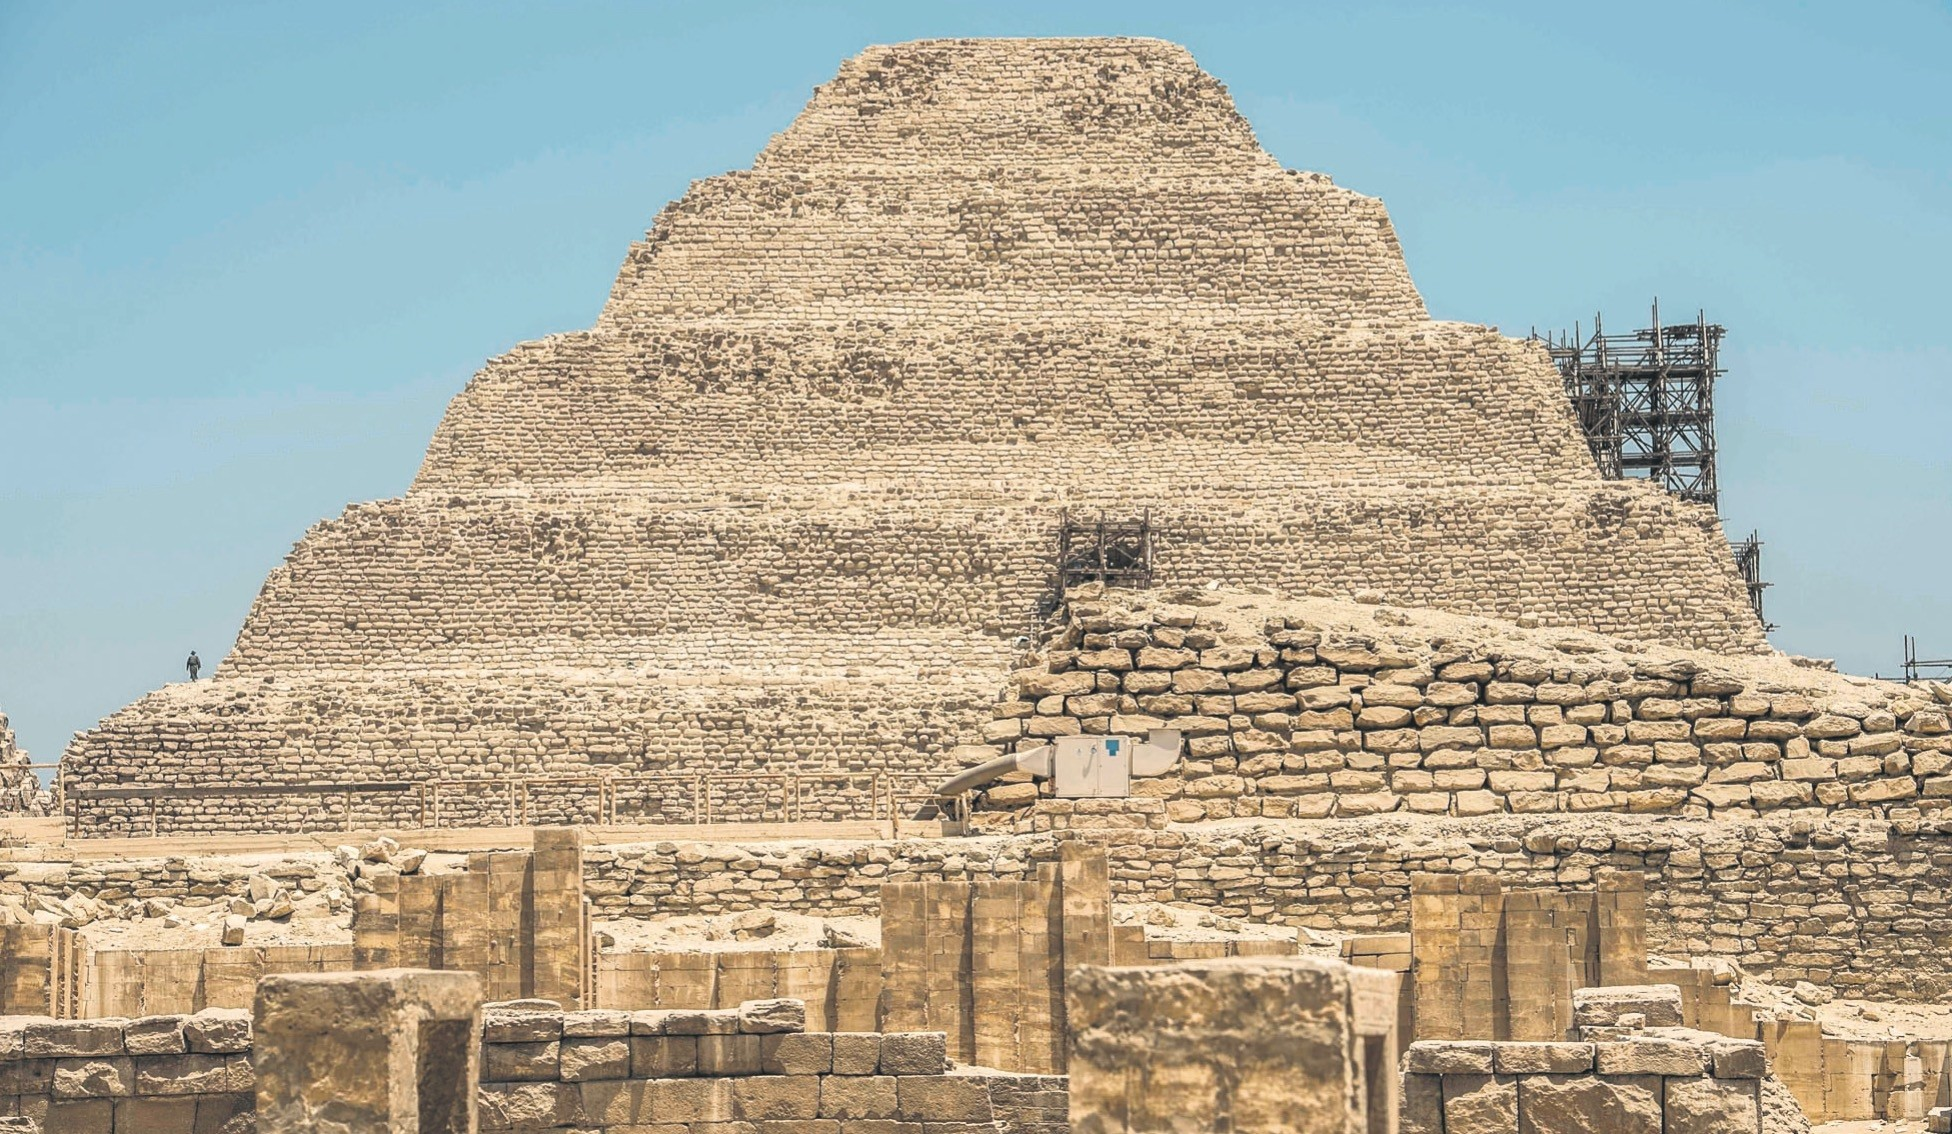 A view of the Djoser, or Zoser, step pyramid in the Saqqara necropolis.